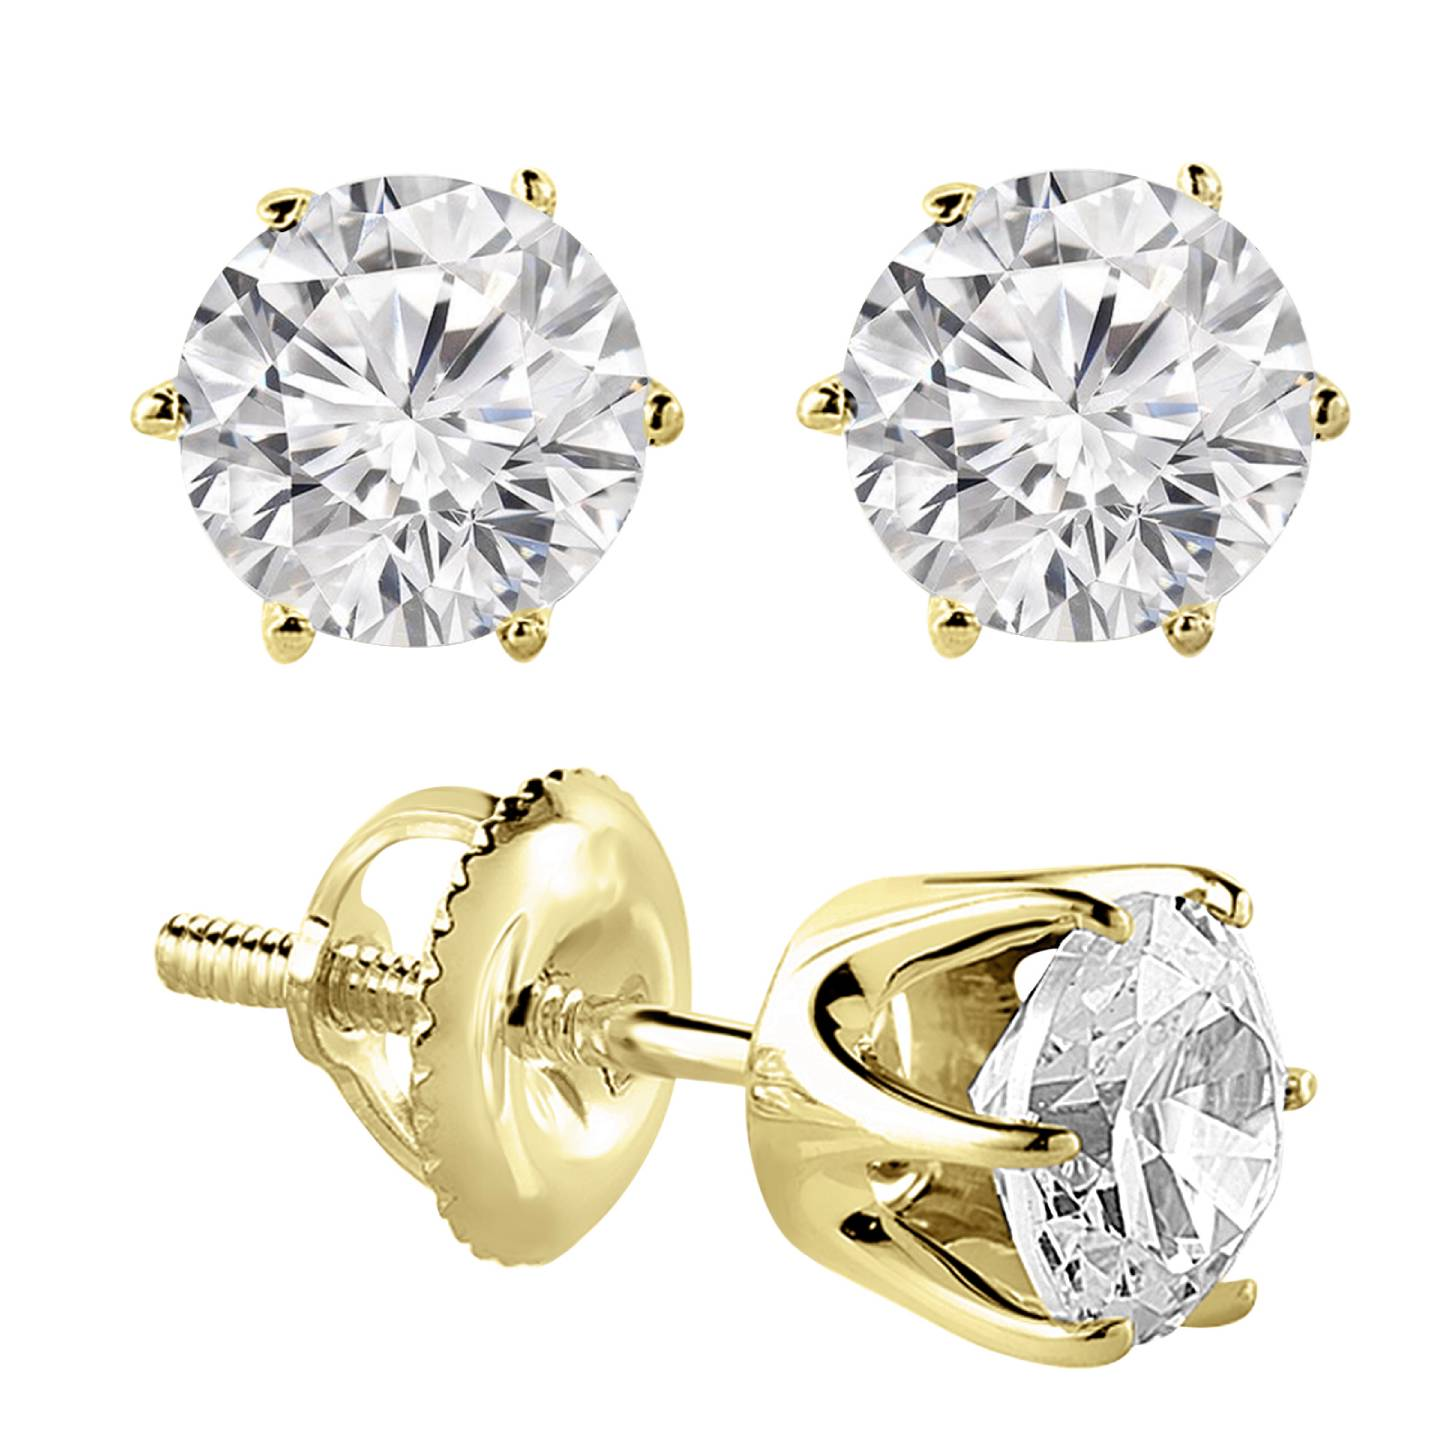 5/8 CTW 6-Prong Solitaire Round Cut Diamond Stud Earrings in 14K Yellow Gold (MD120669) - image 1 of 2